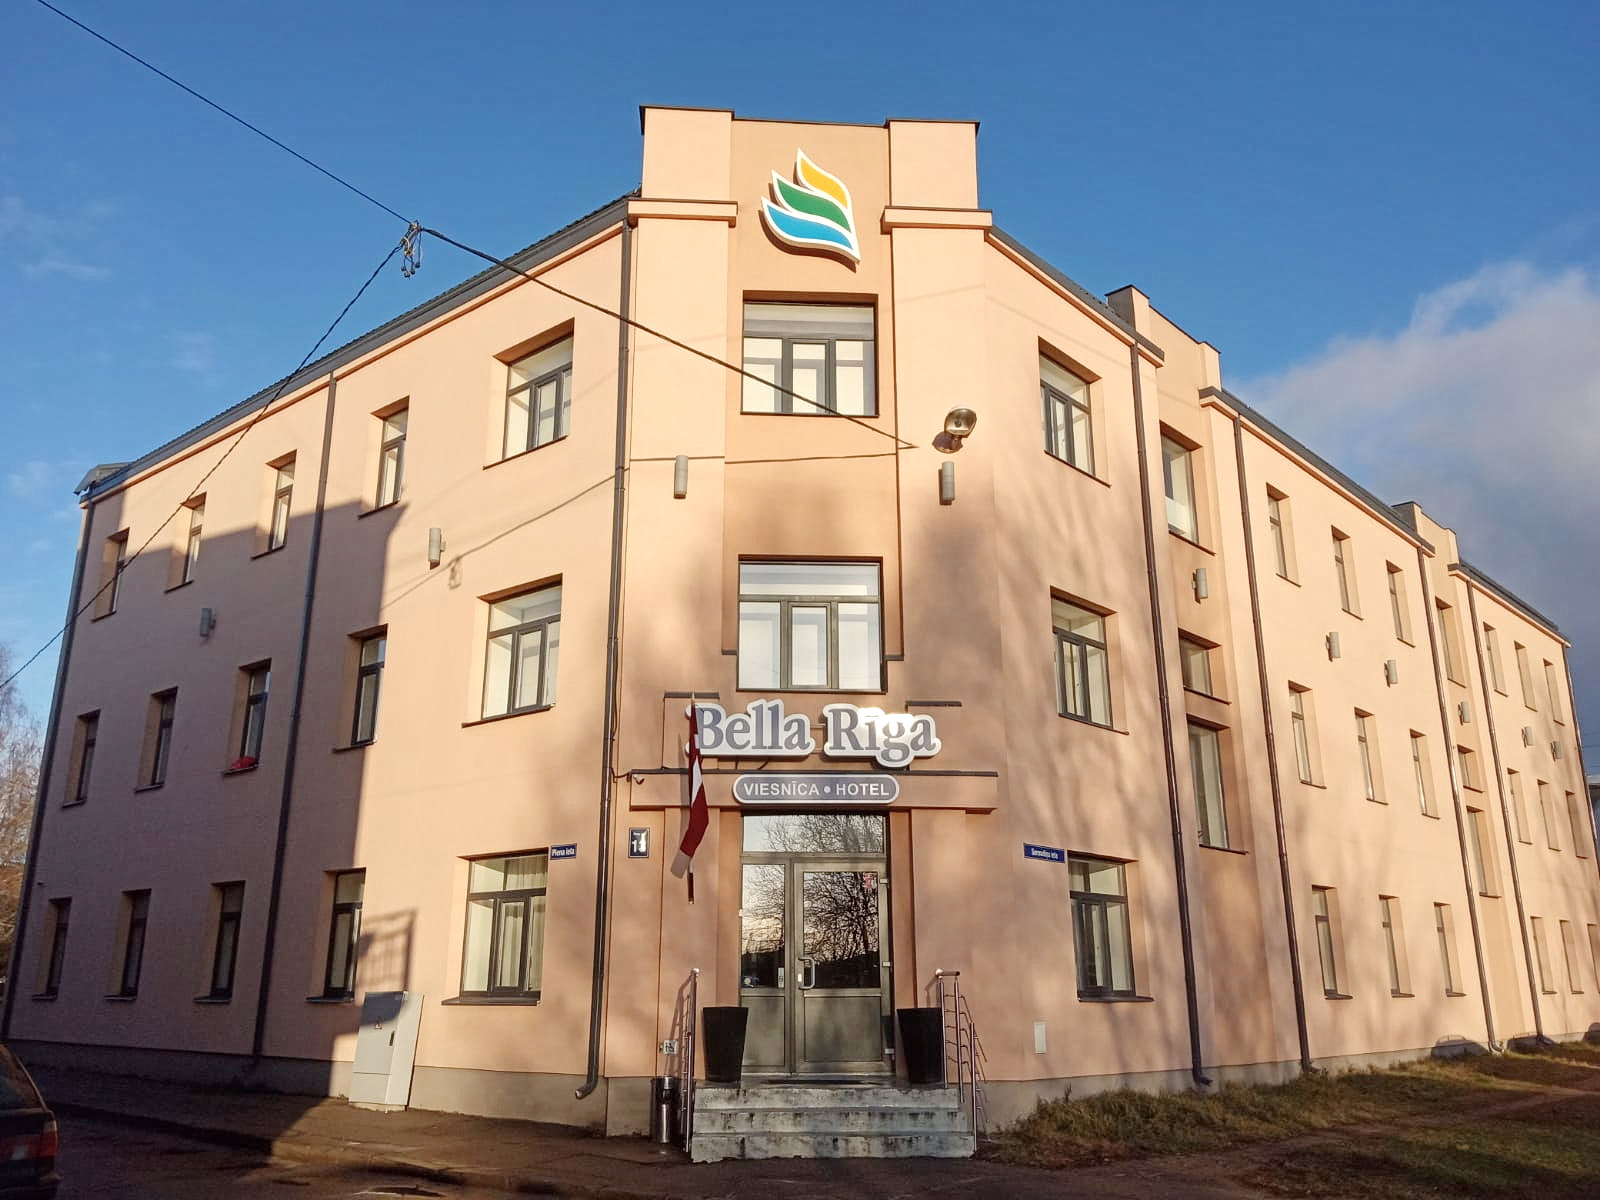 Bella Riga Hotel - Cheap hotel in the center of Riga